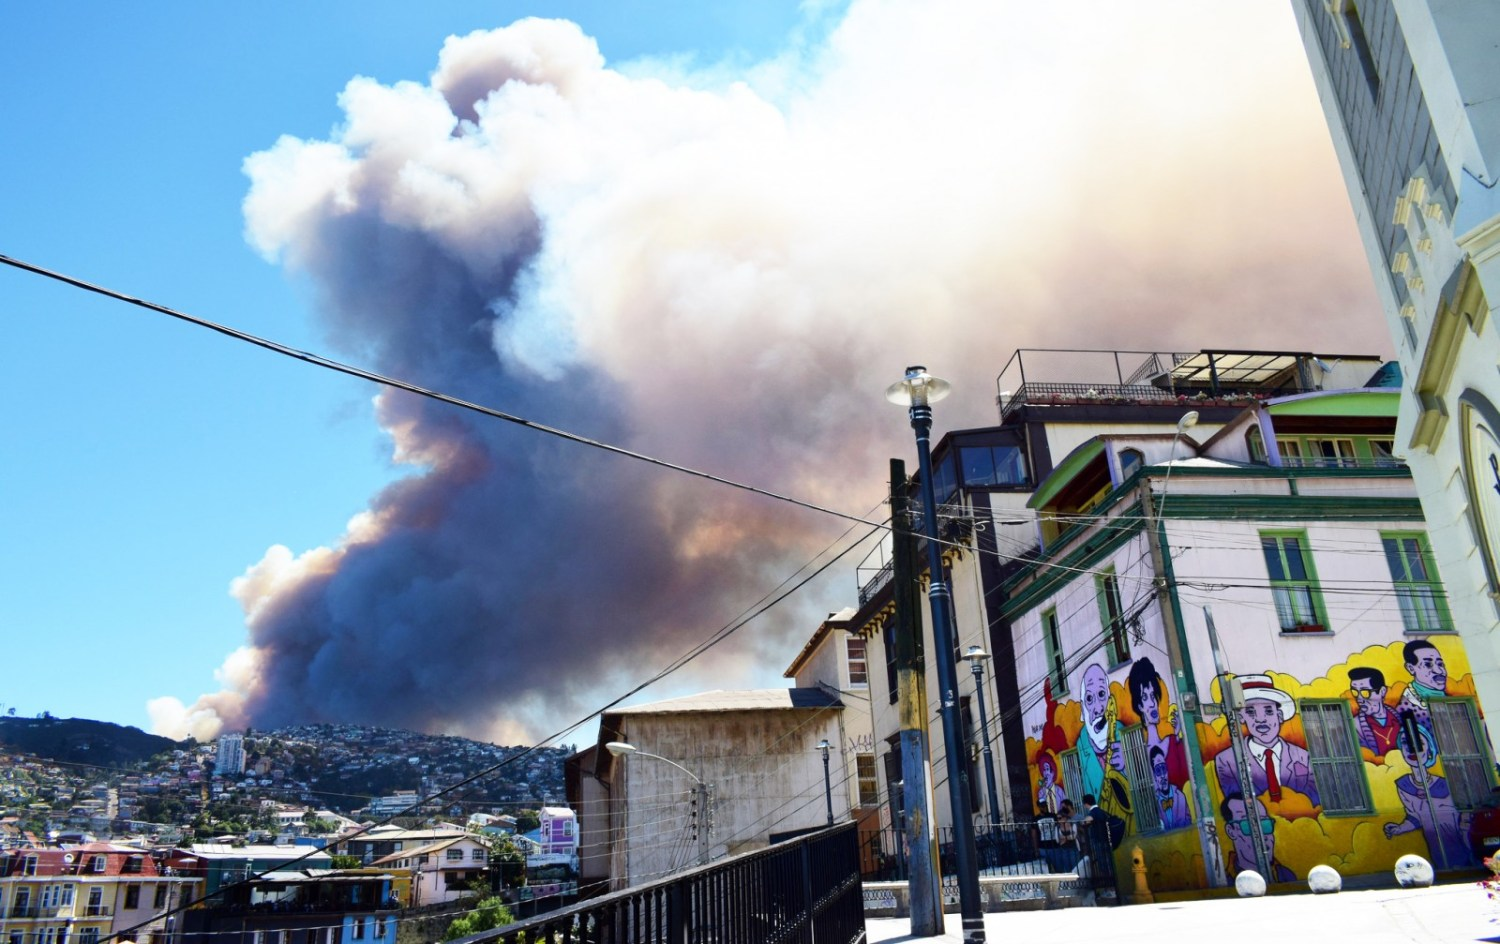 Smoke from a wildfire looms over Valparaíso, Chile in January. A drought helped stoke fires across central Chile, while fire damage contributed to landslides that contaminated water supplies in Santiago. Photo courtesy Zhu via Flickr Creative Commons.